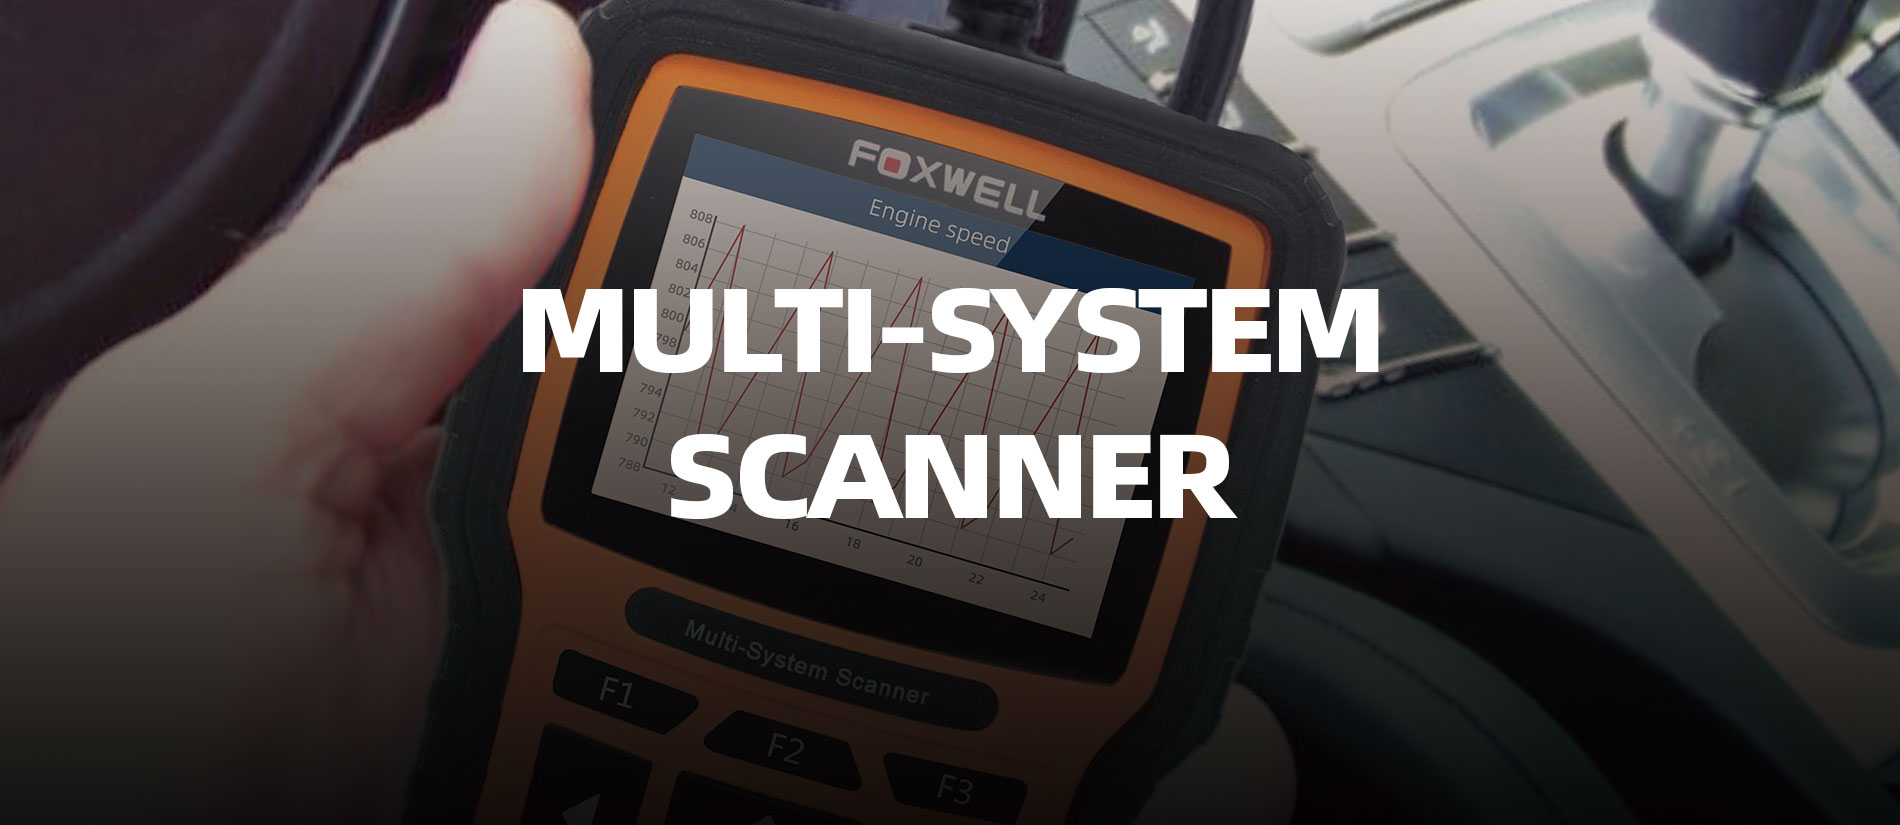 Foxwell Released A Professional Multi-System Scanner NT510Elite